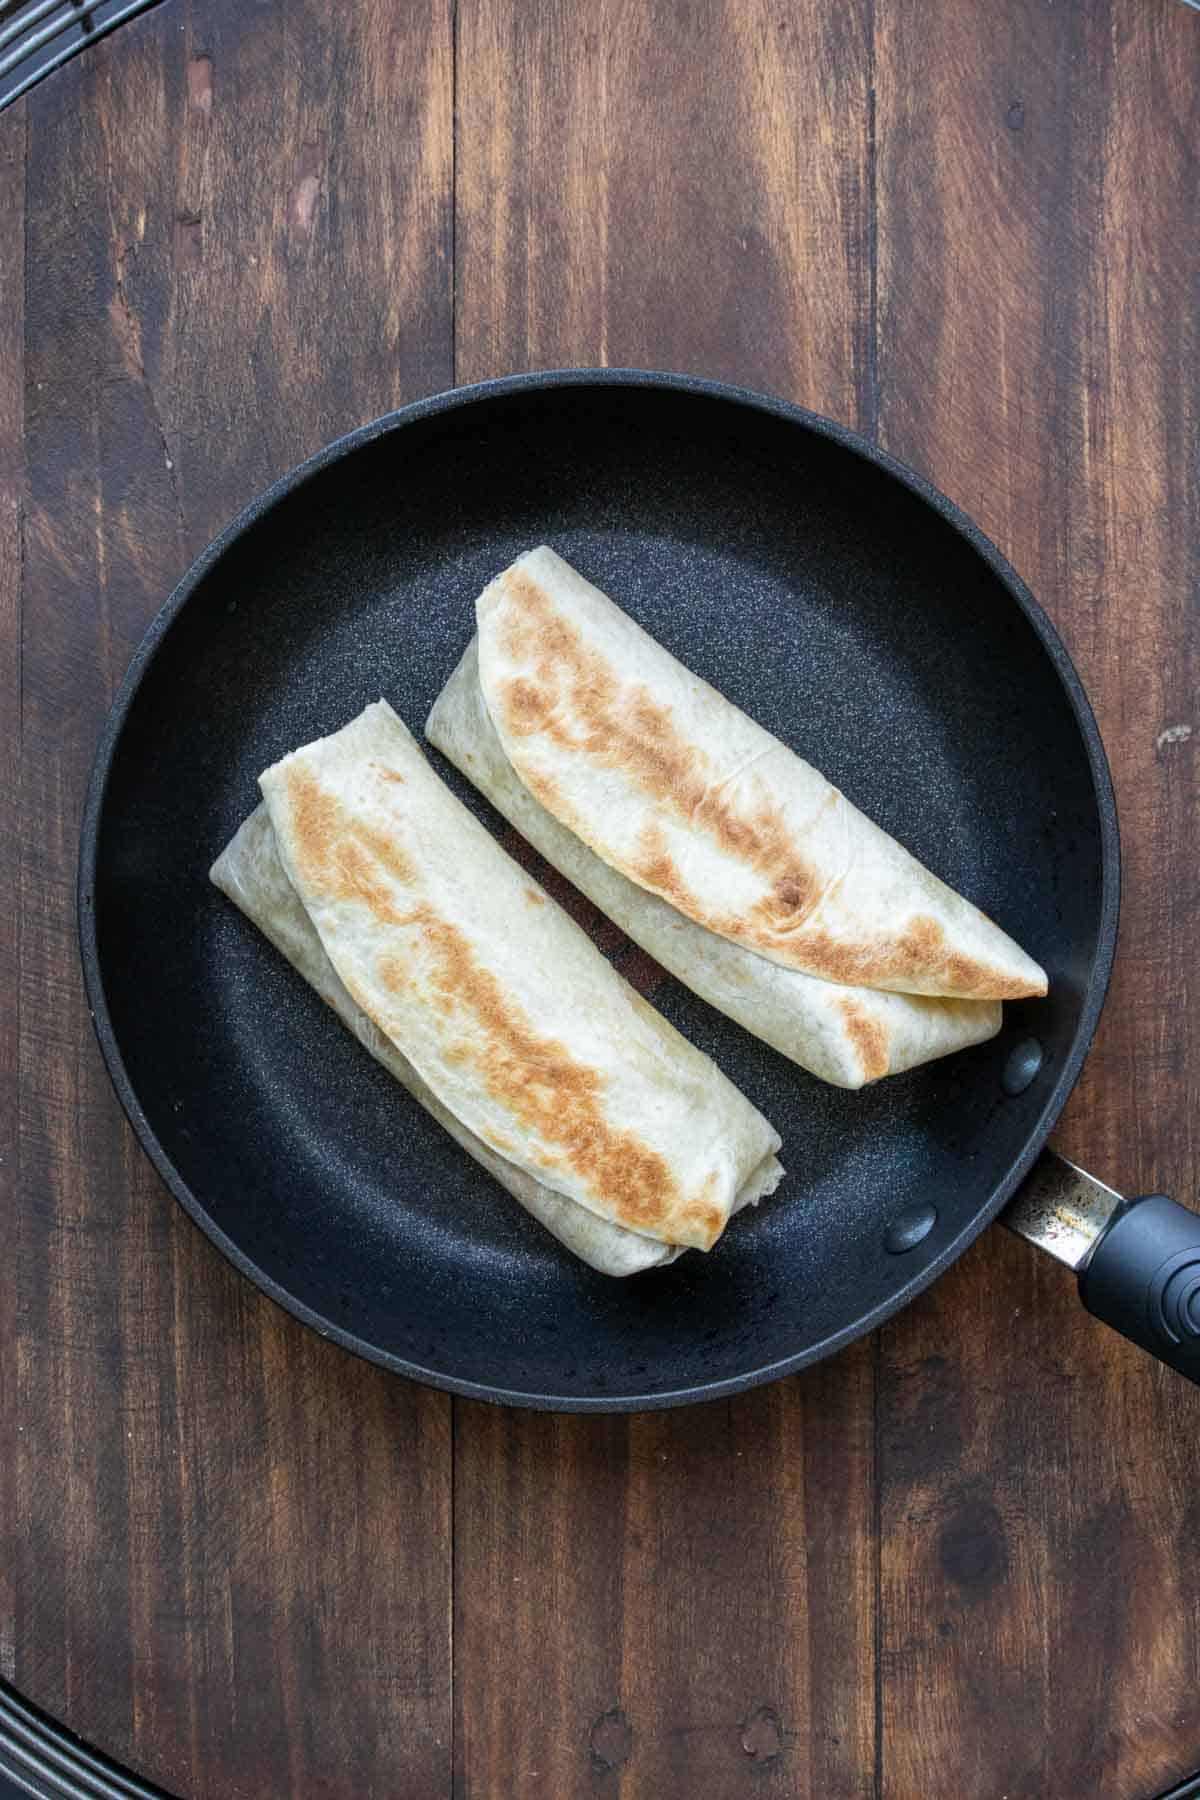 Pan with two burritos grilling on it